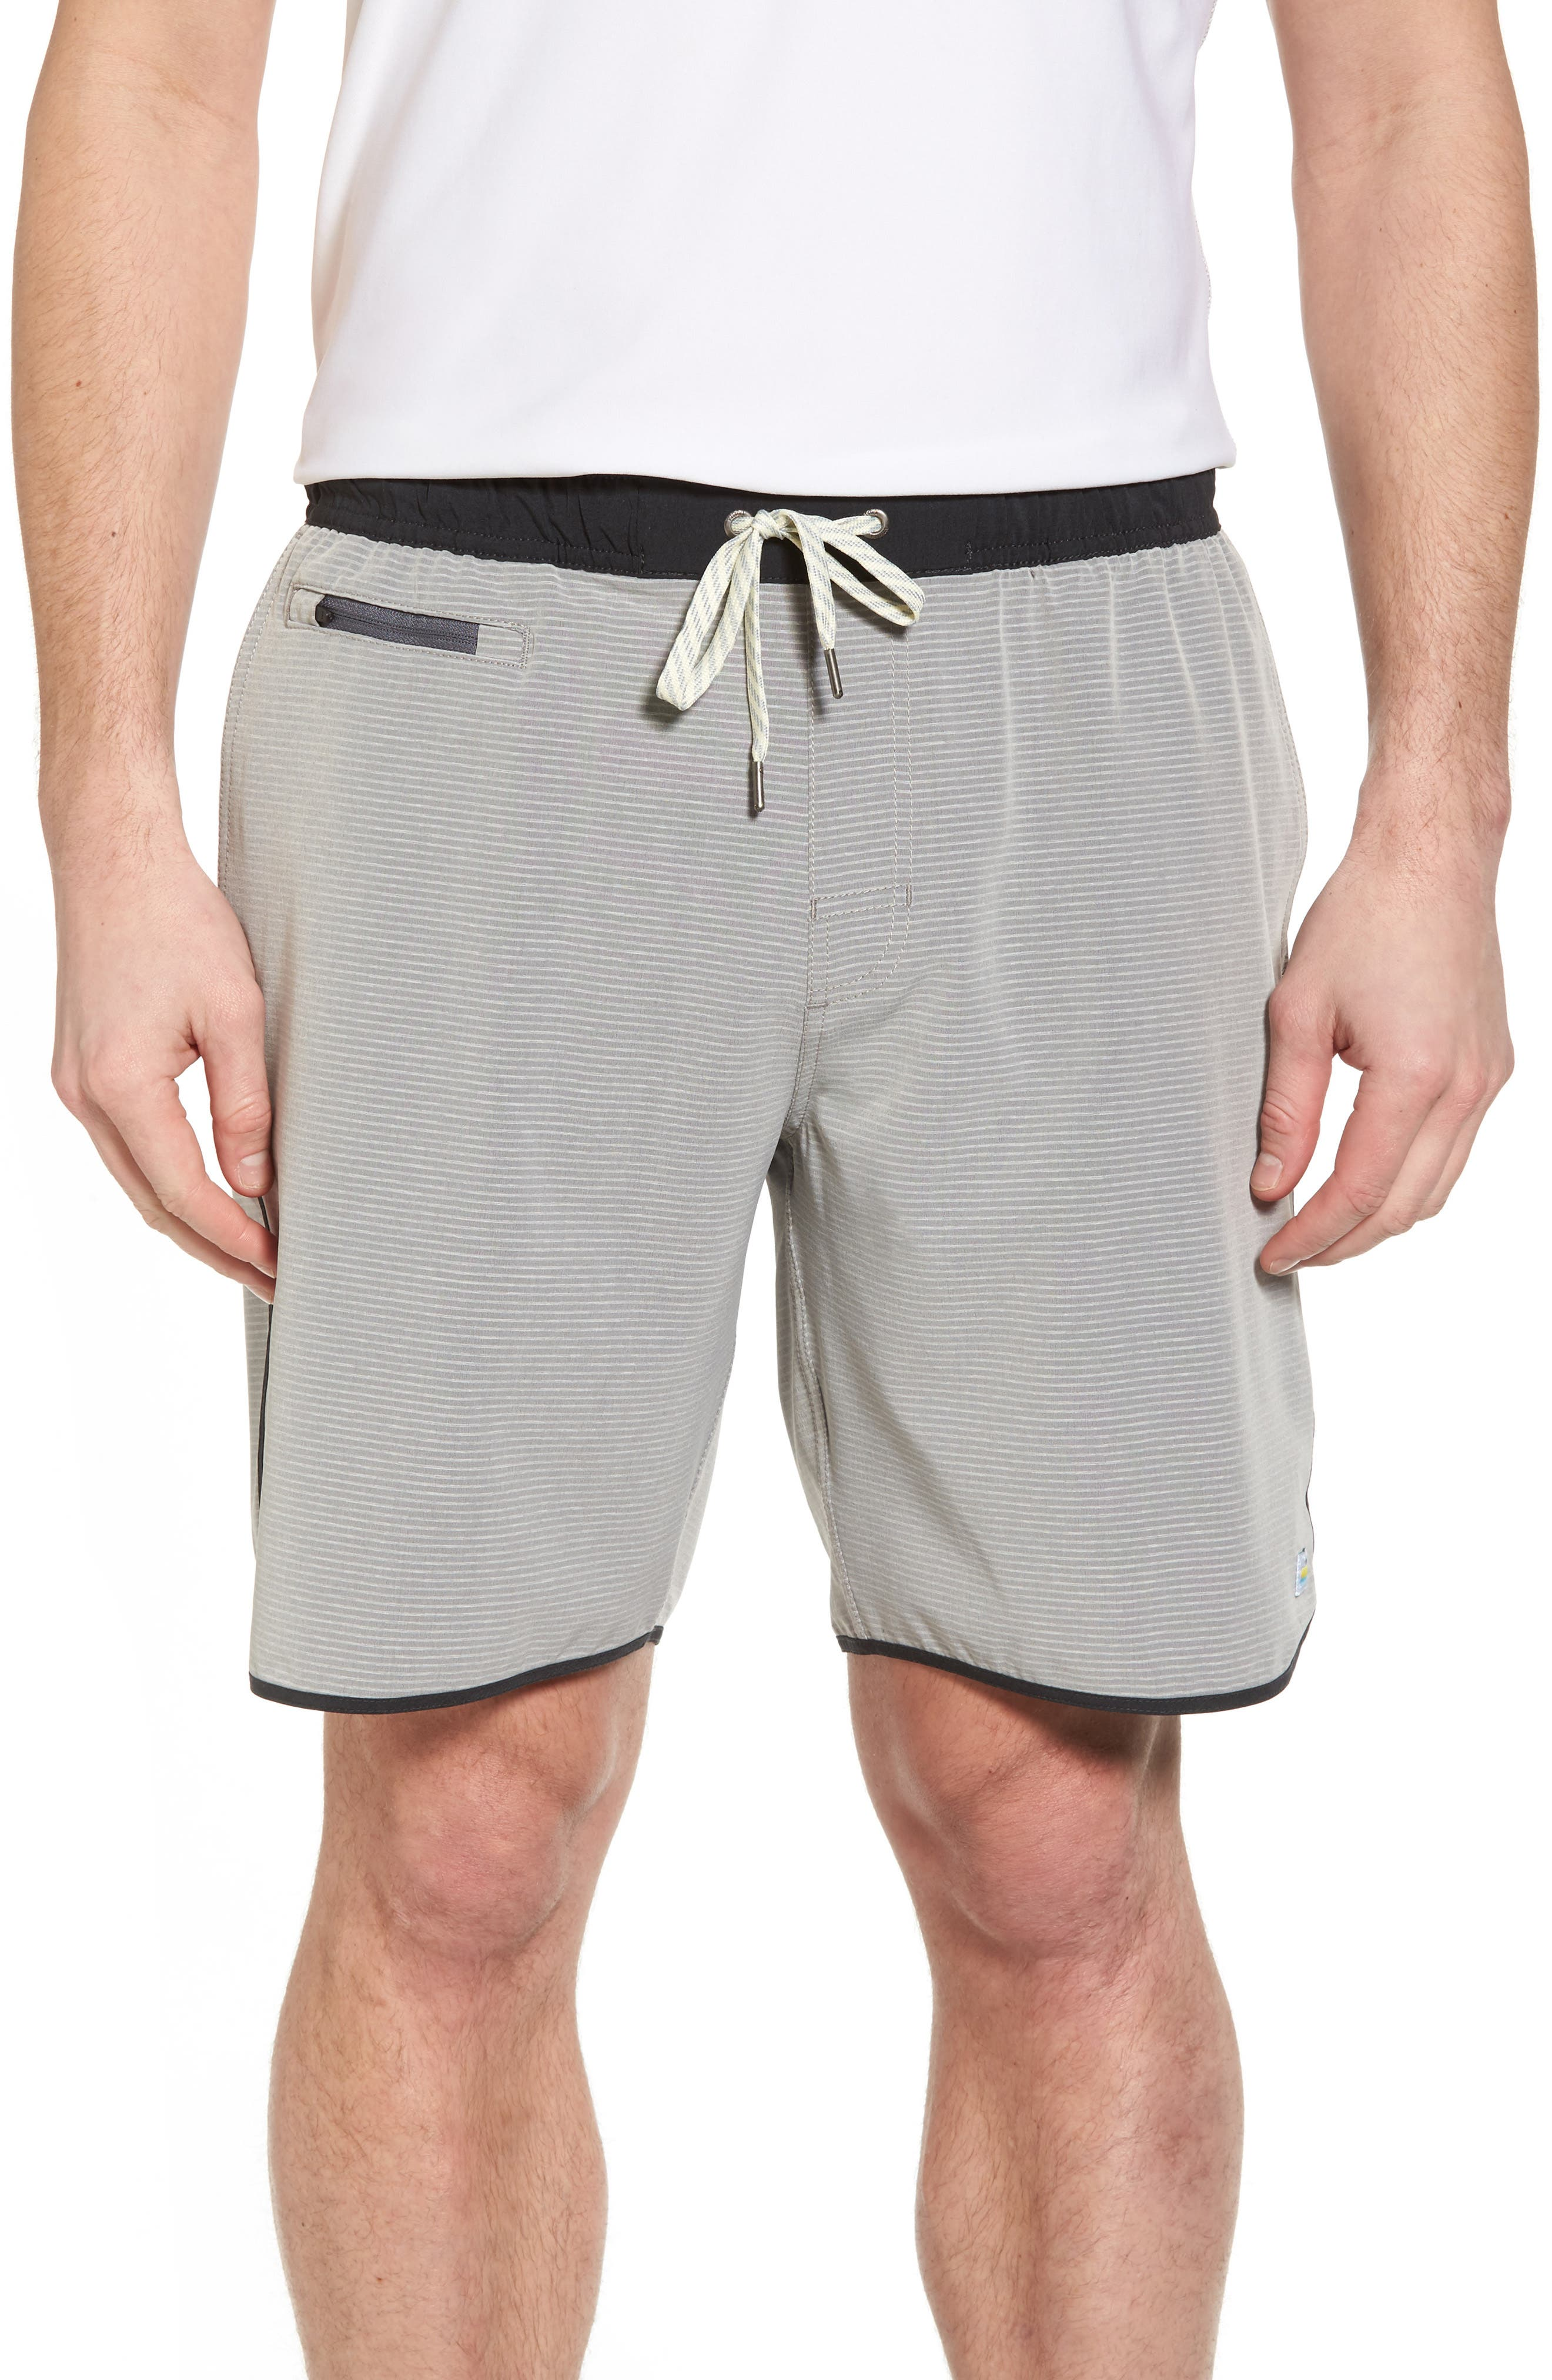 Banks Athletic Shorts,                         Main,                         color, Light Grey Engineered Stripe